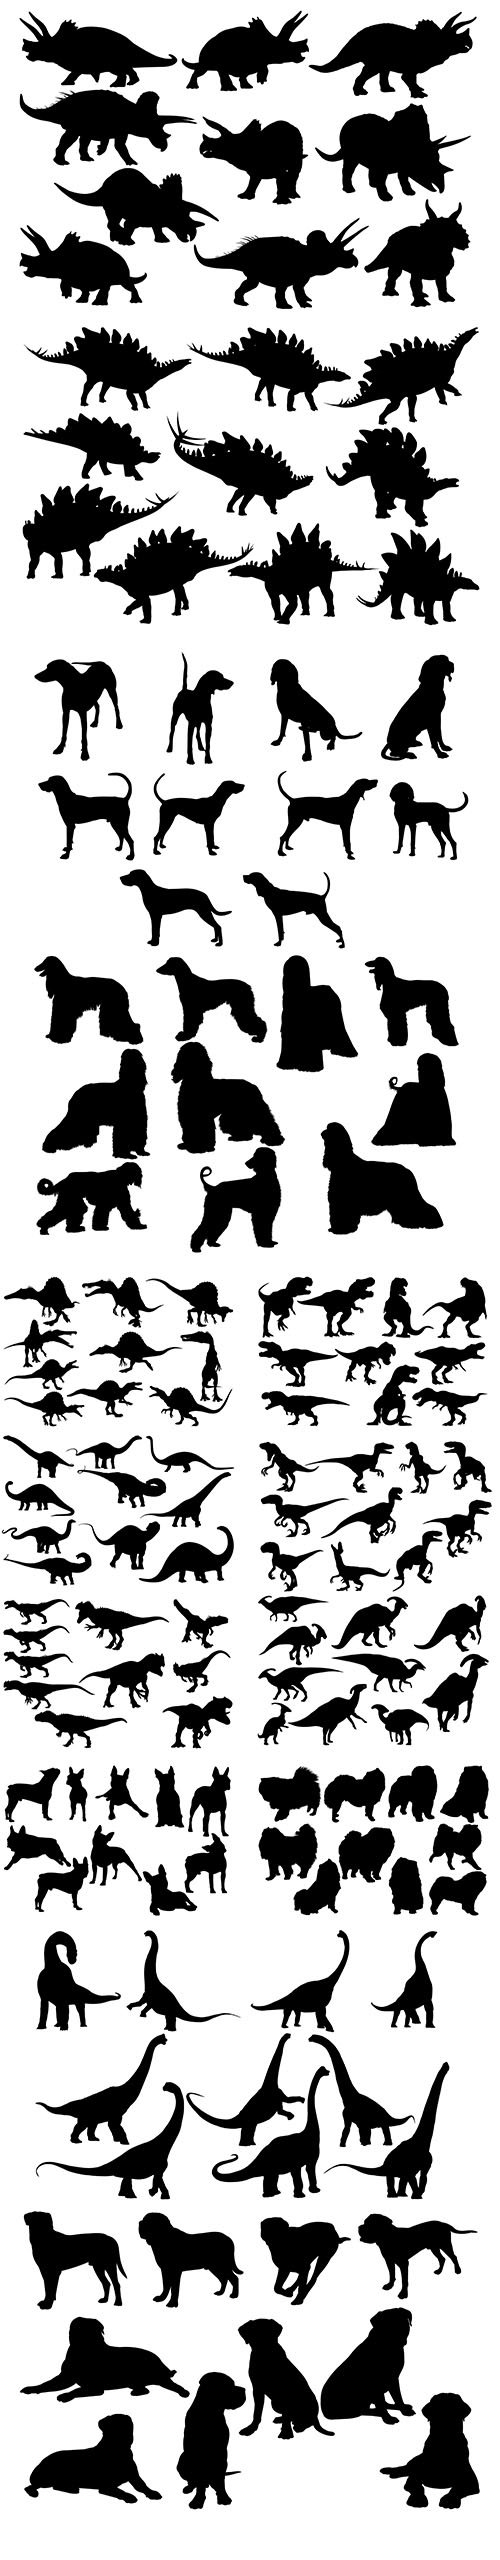 Dinosaur and Dog Silhouette Set